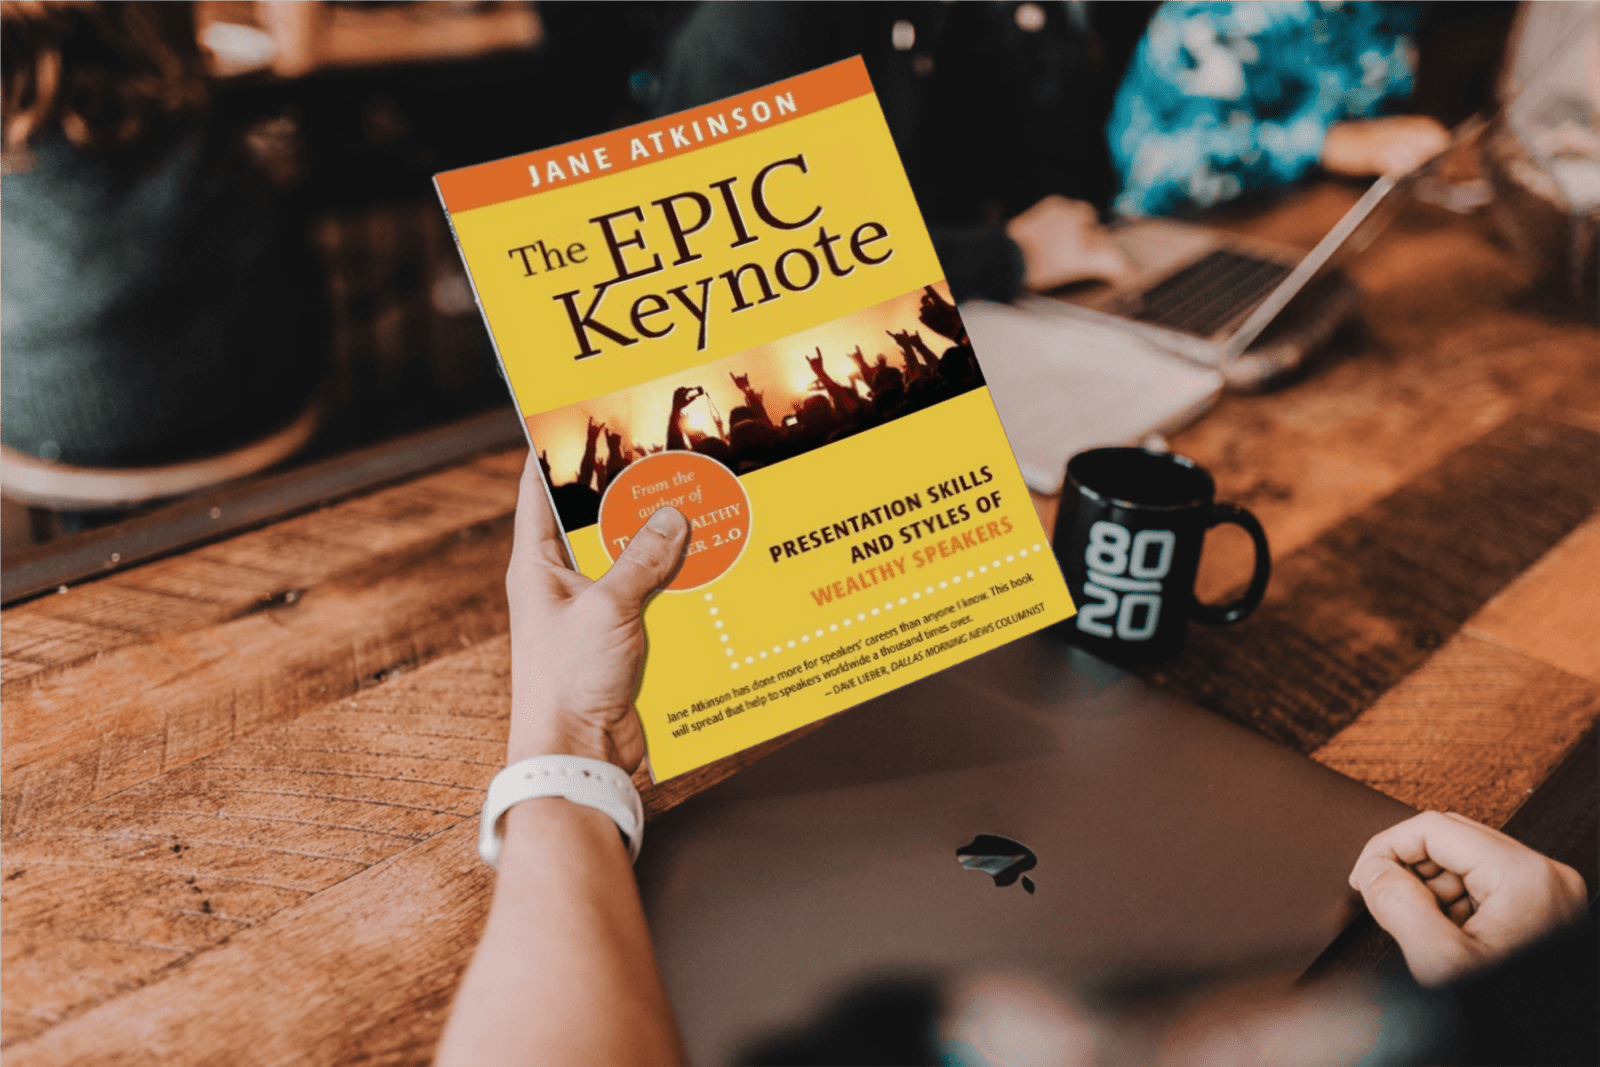 the epic keynote book -jane atkinson